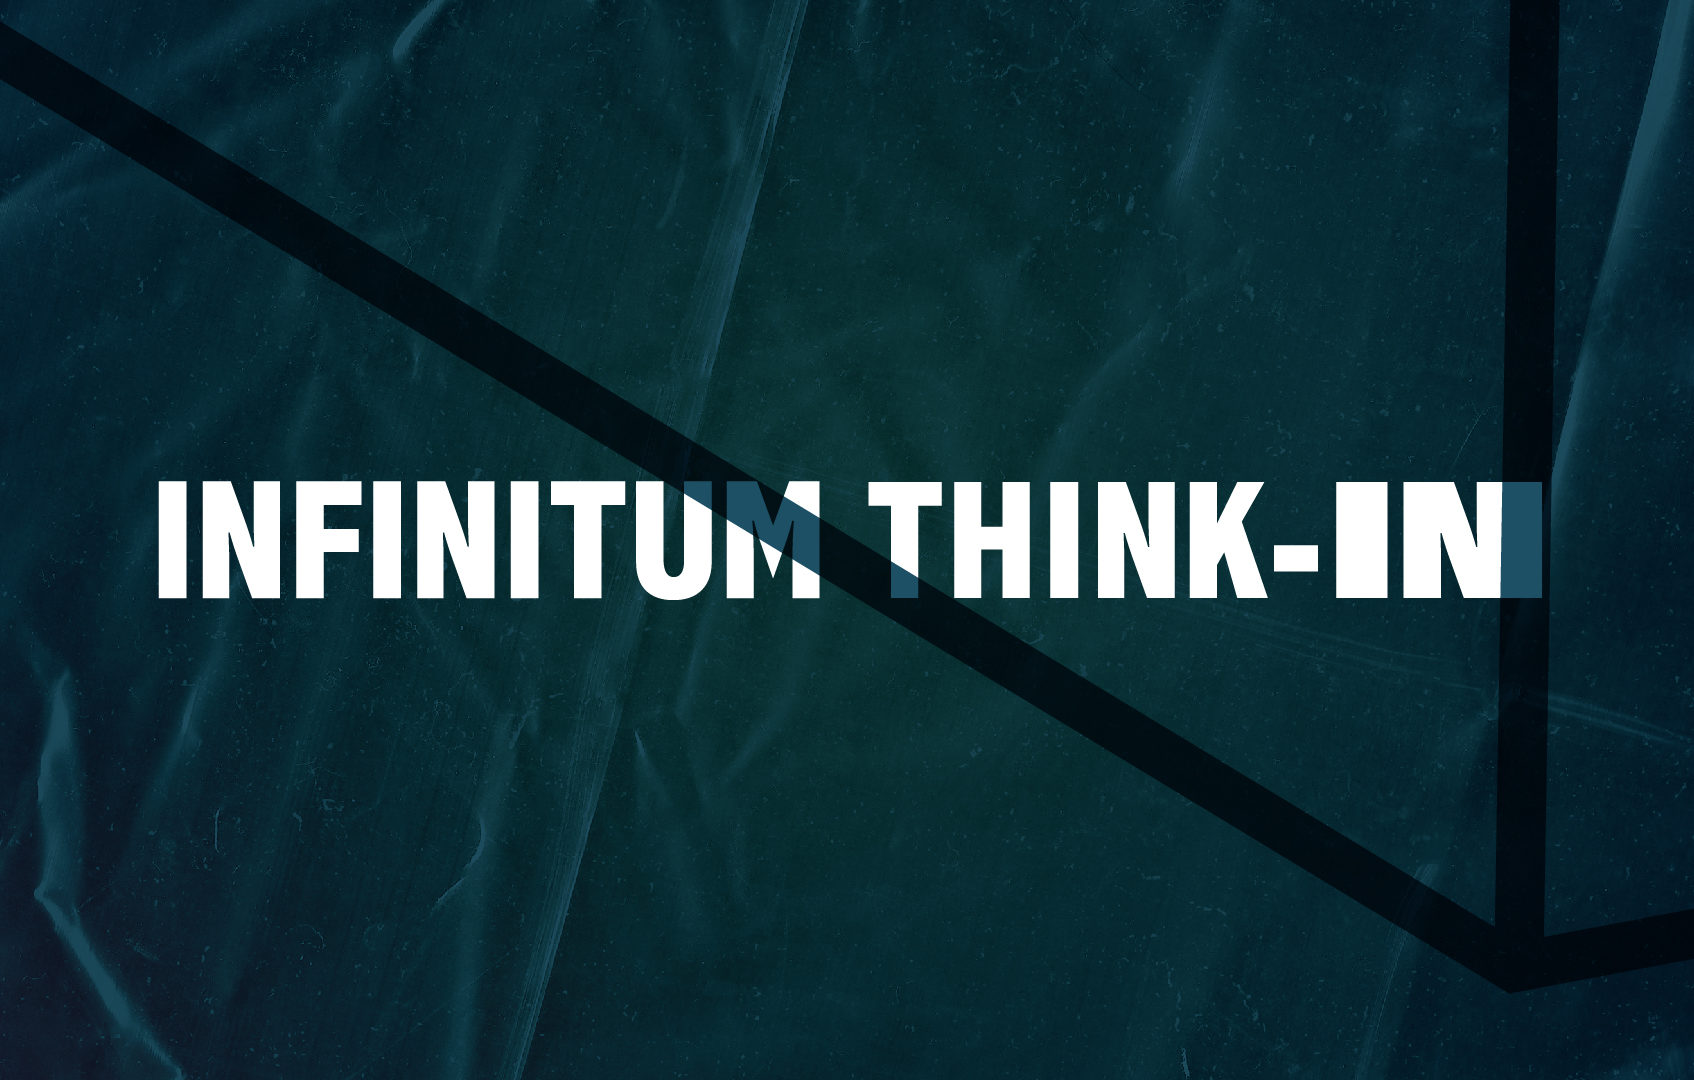 Infinitum Think-In – visuell identitet